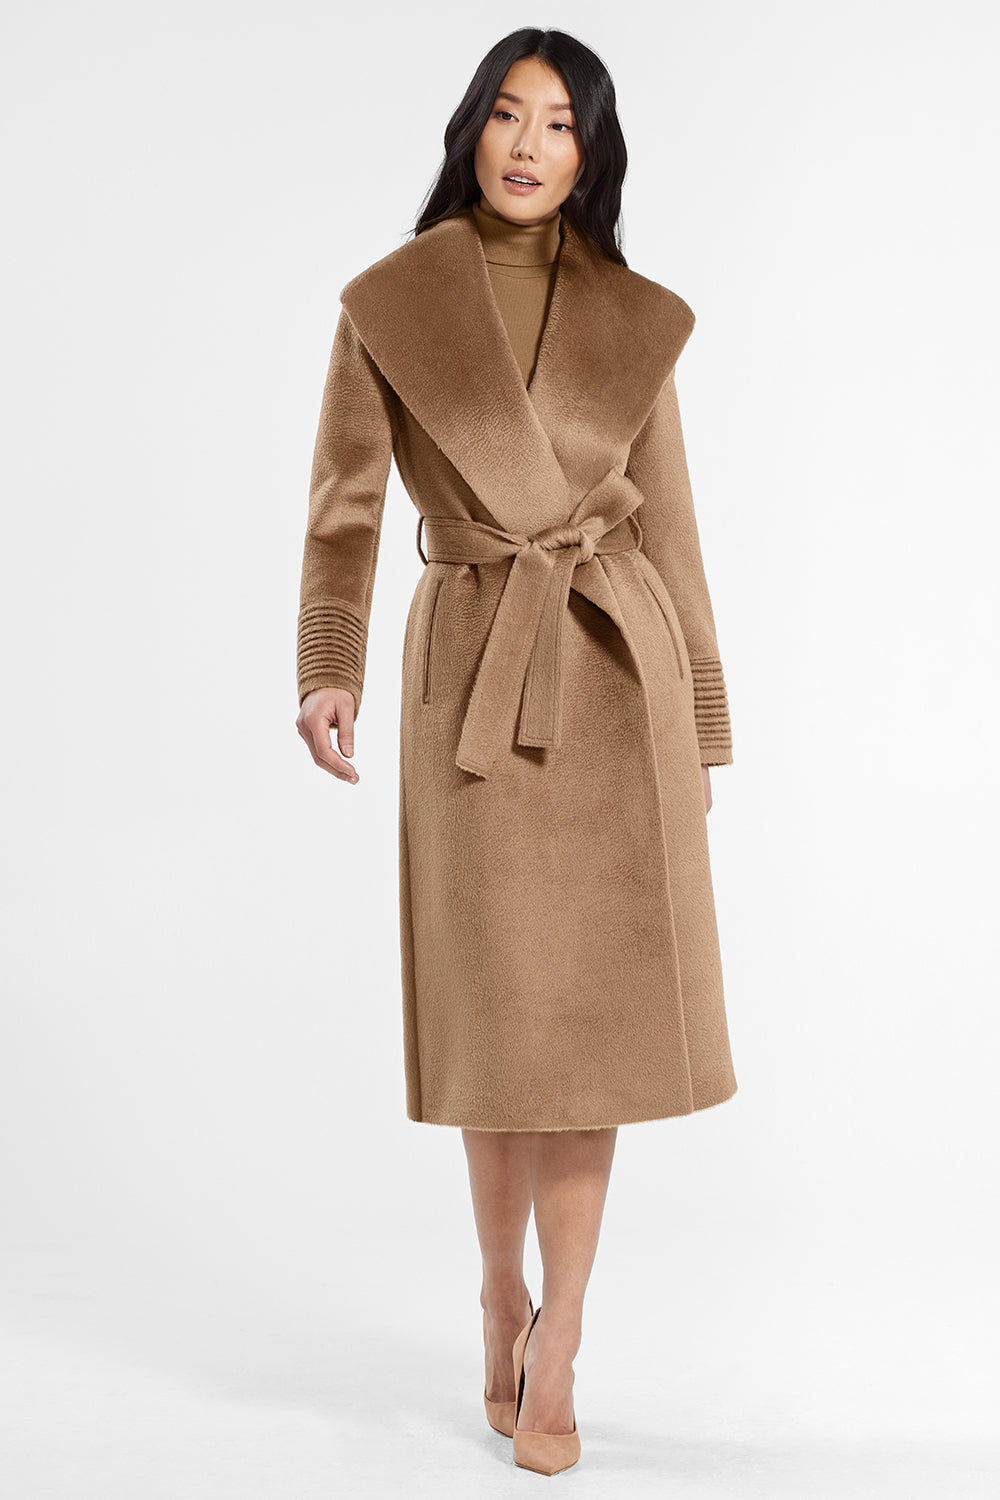 Sentaler Suri Alpaca Long Shawl Collar Wrap Coat featured in Suri Alpaca and available in Dark Camel. Seen from front.